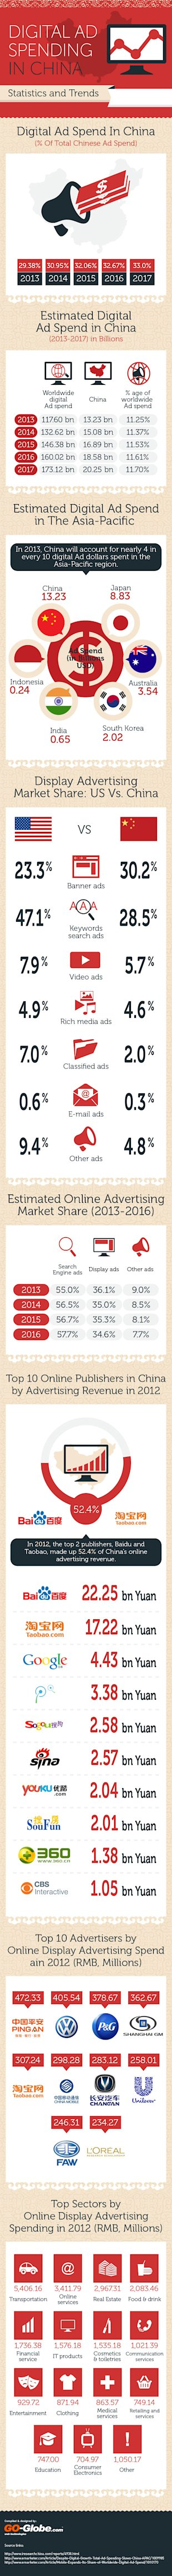 Digital Ad Spending in China image digital ad spend china15